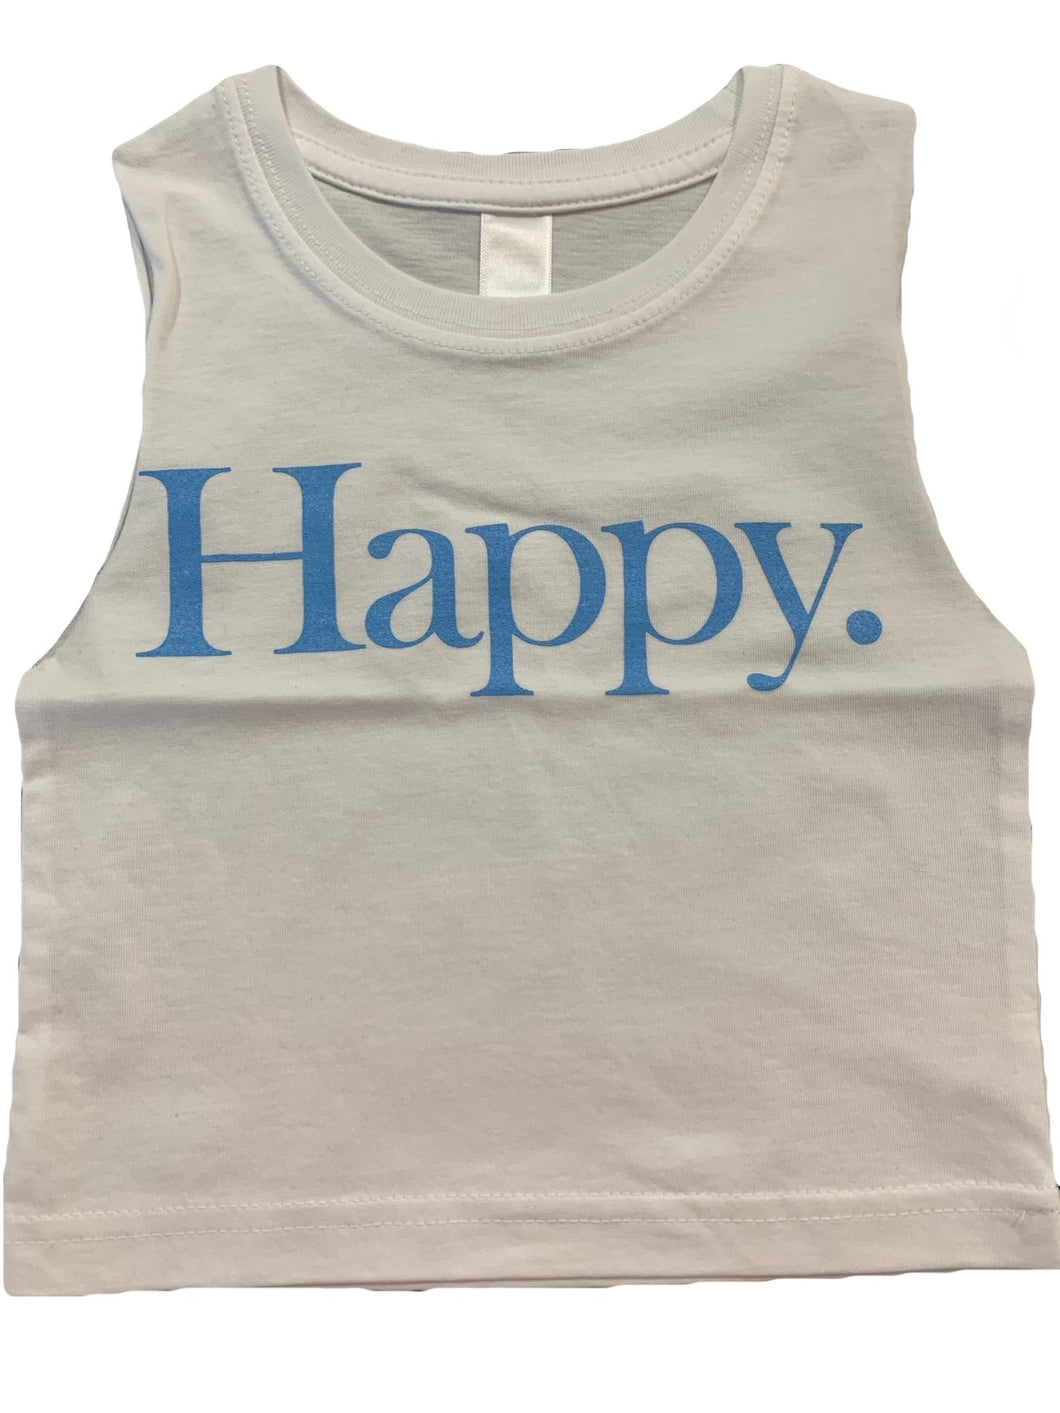 HAPPY (WHITE TANK)